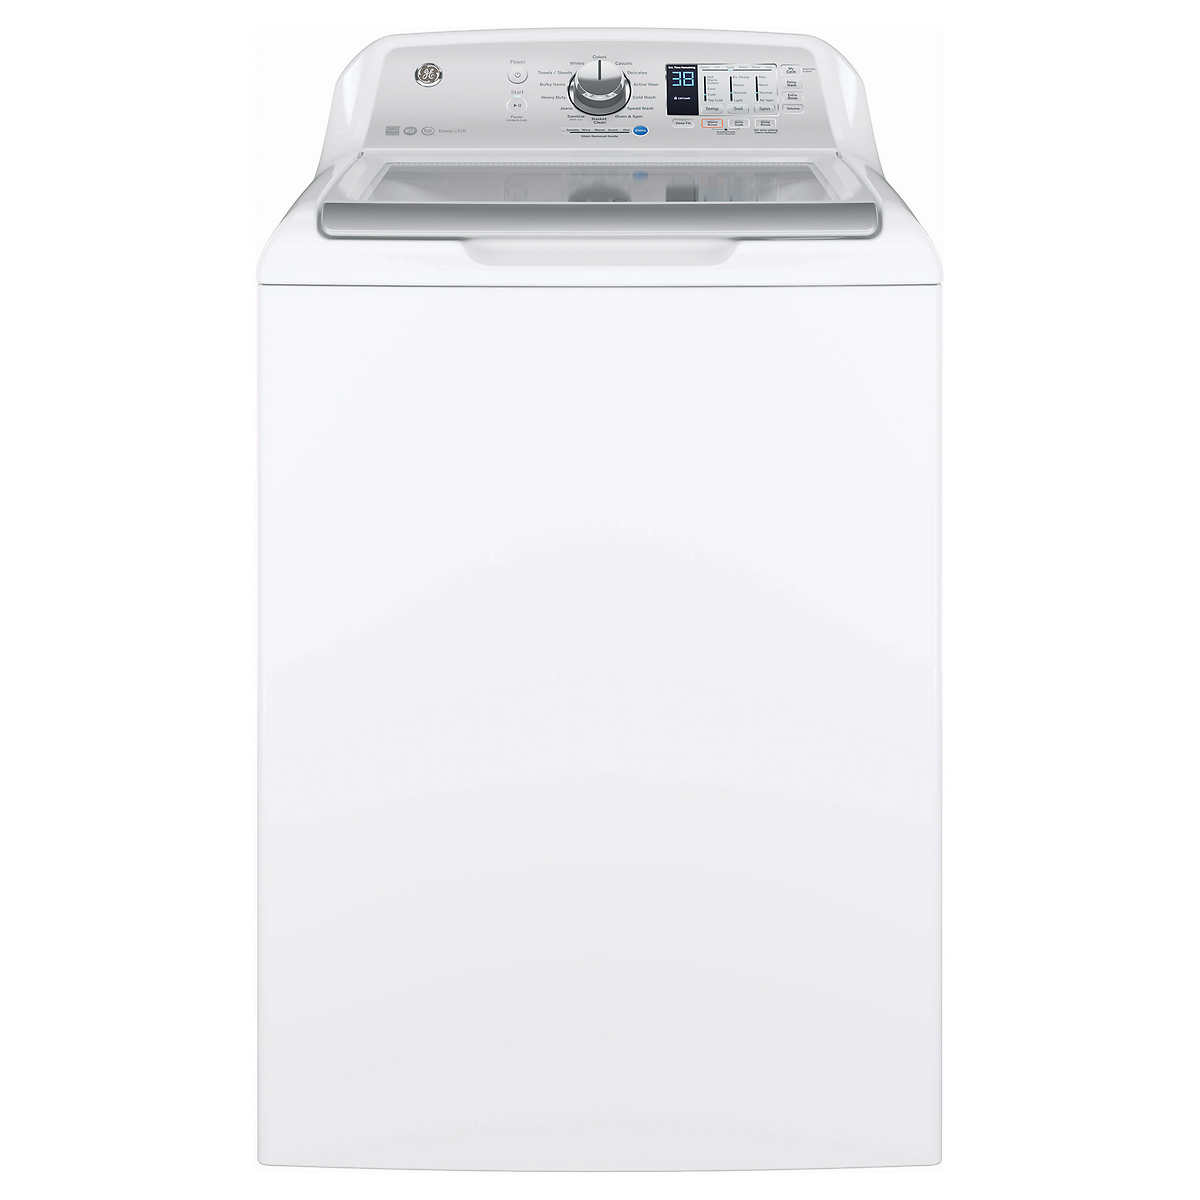 The best top load washer and dryer combo 2015 - Ge 4 6 Cuft Capacity Top Load Washer In White